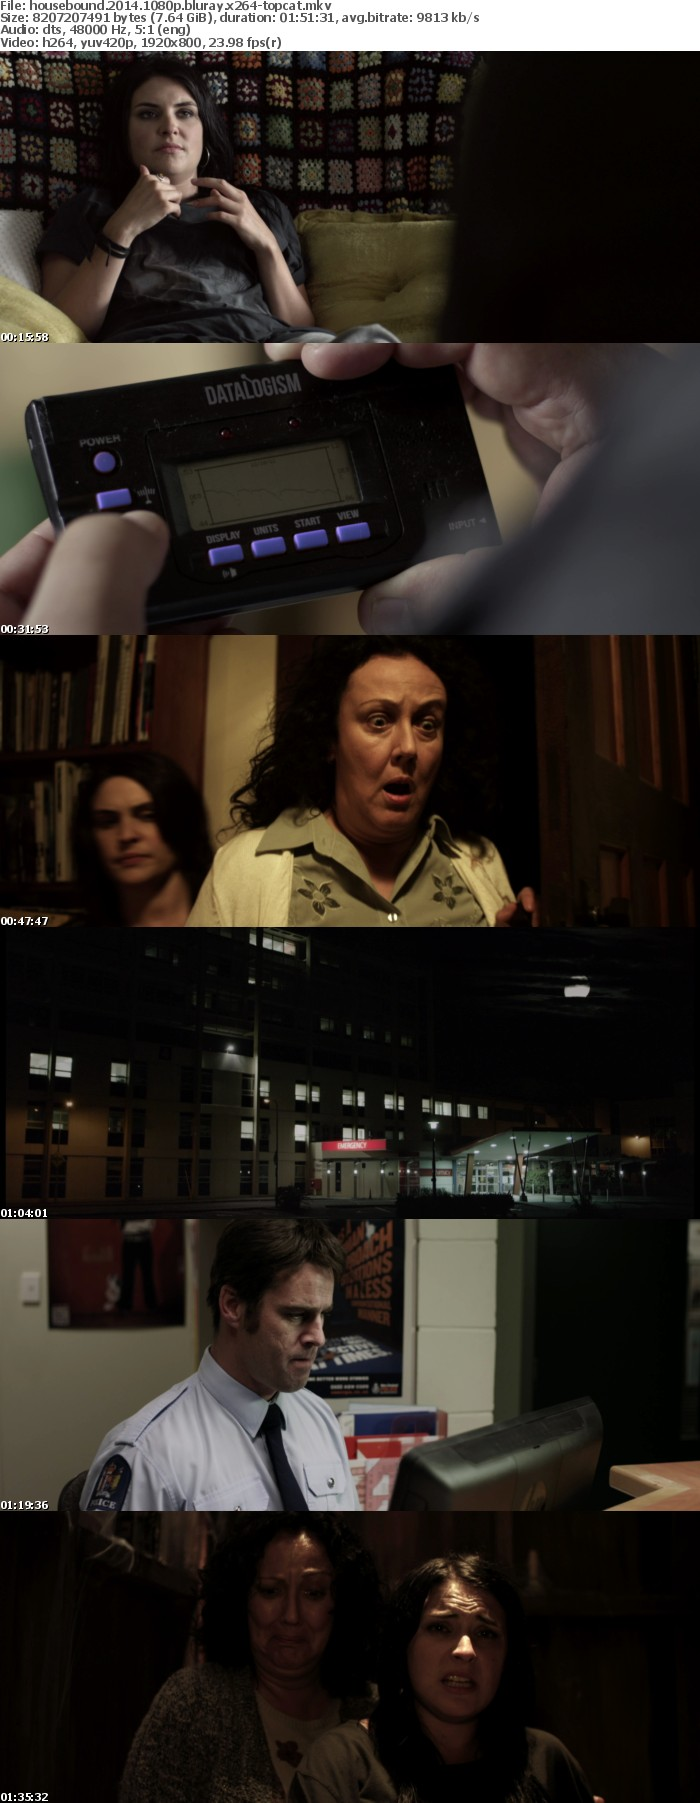 Housebound 2014 1080p BluRay x264-TOPCAT TL